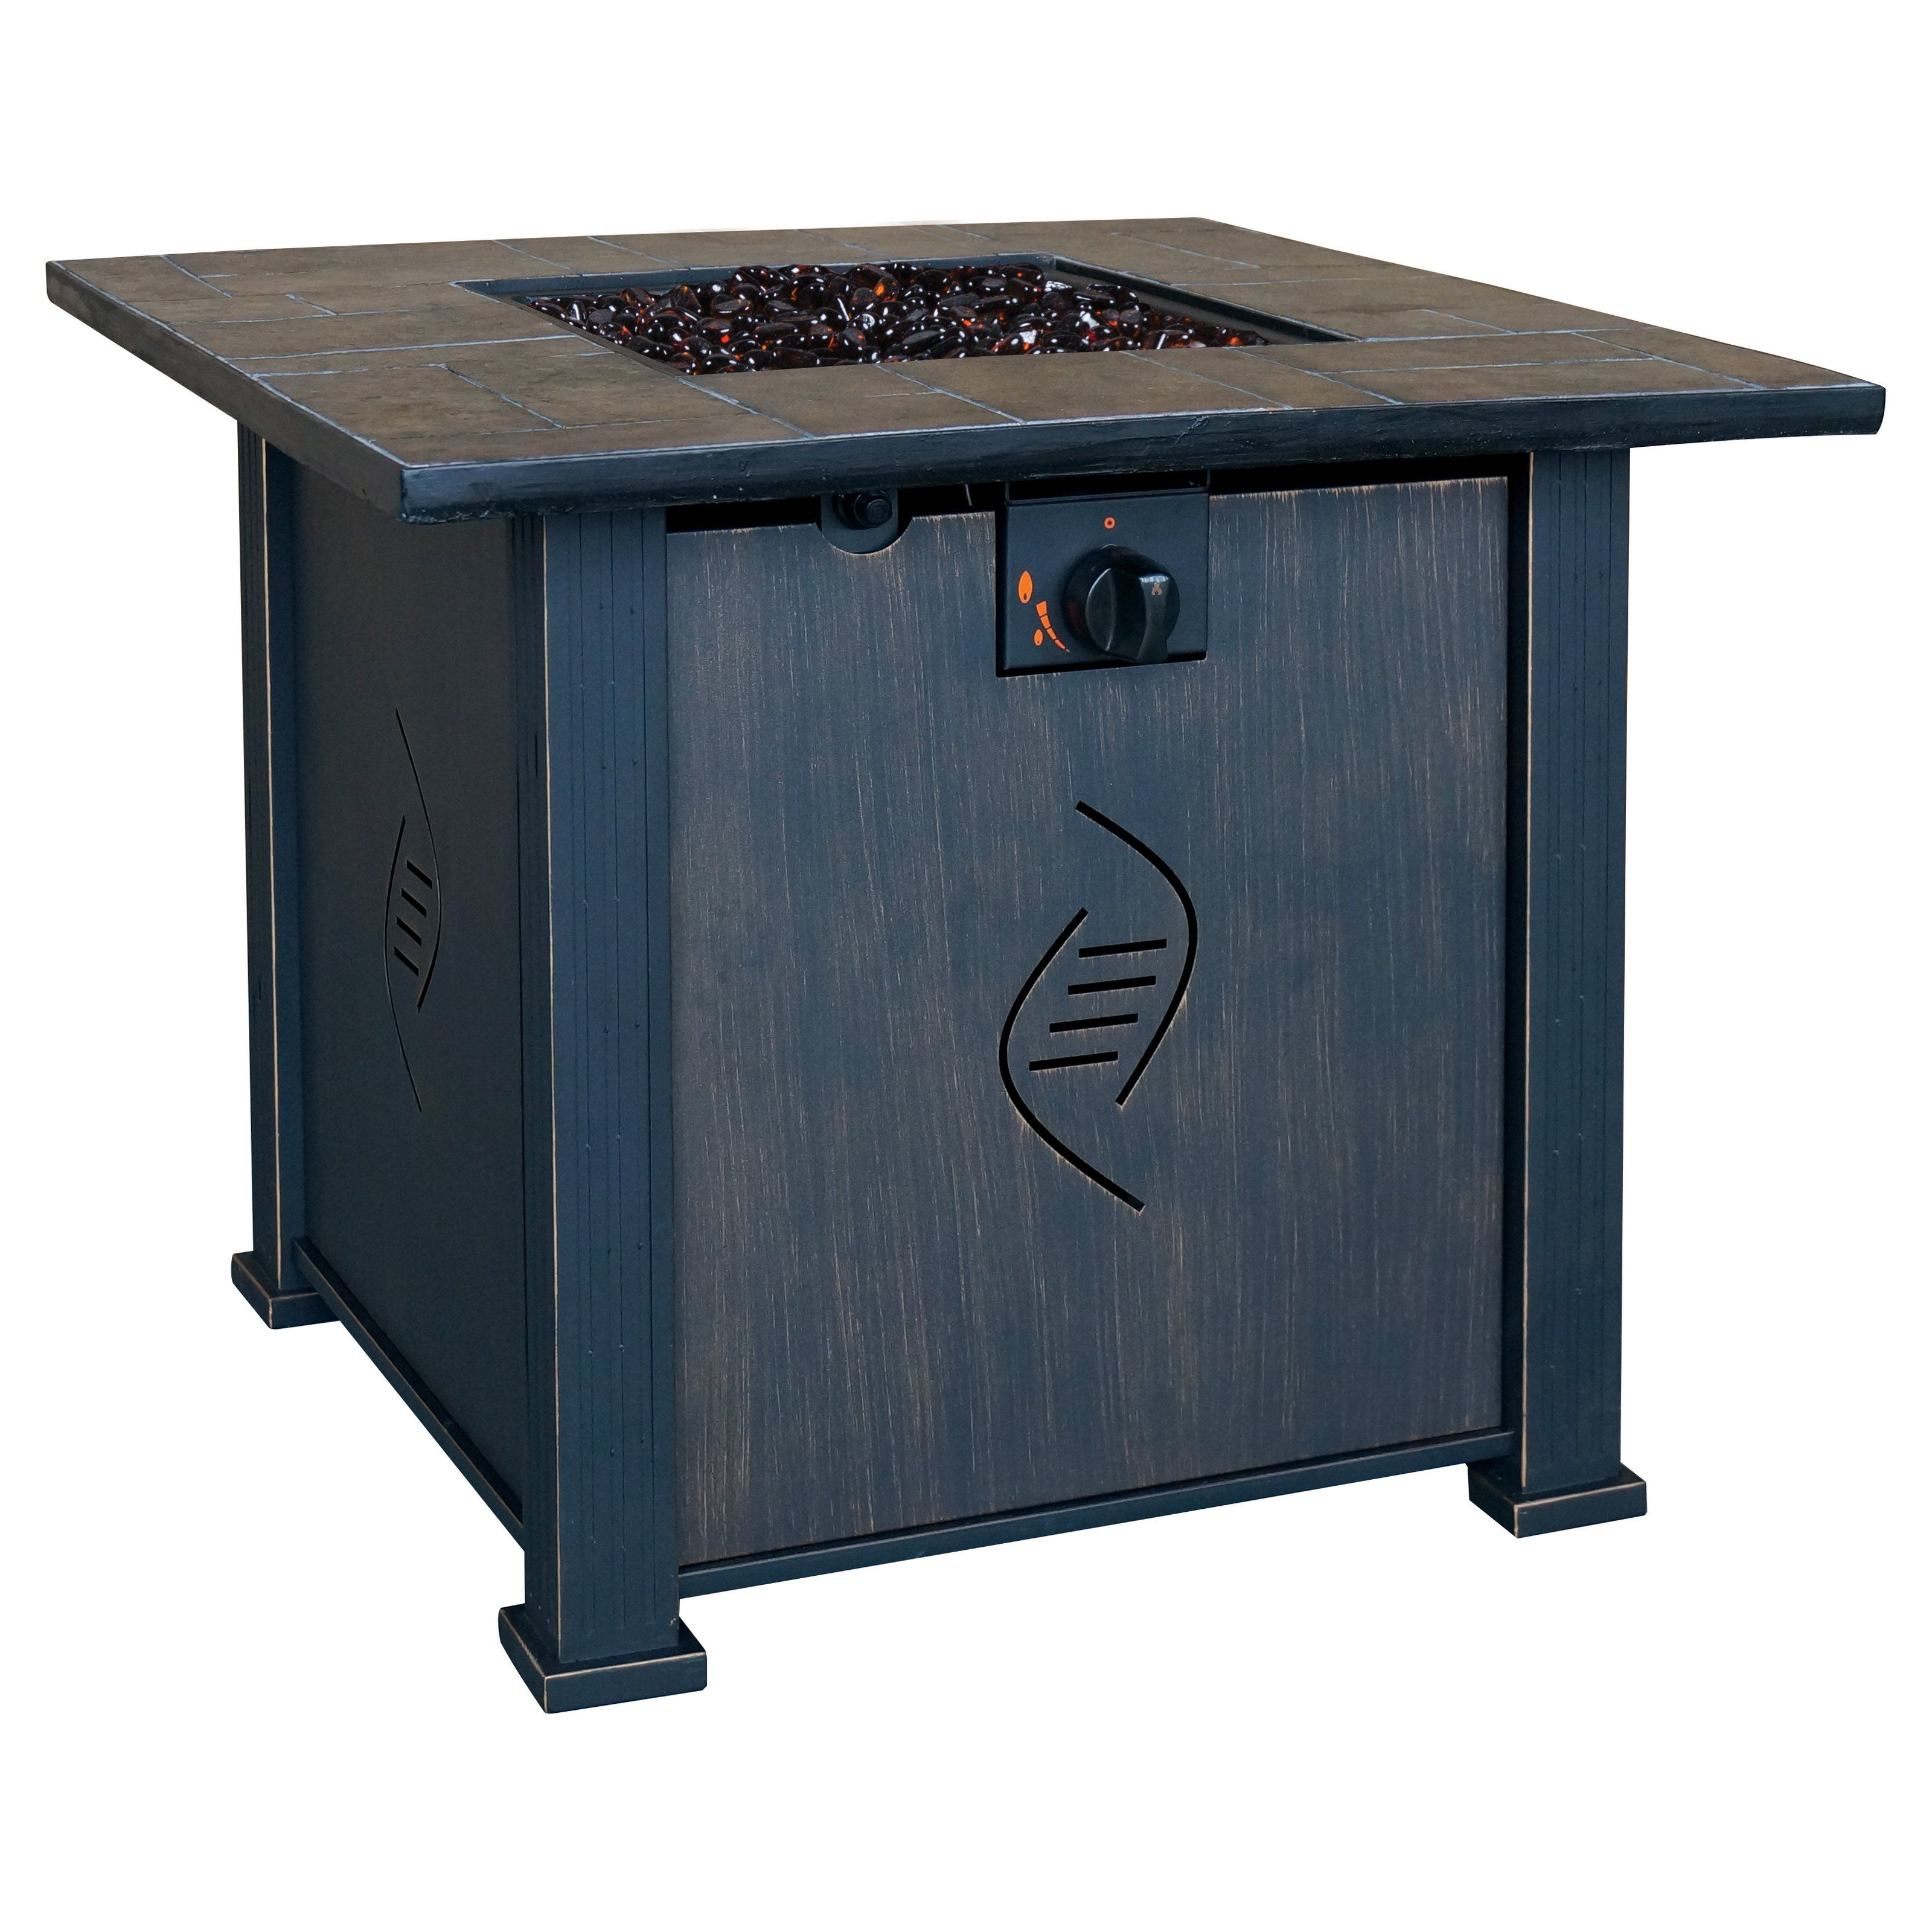 Bond lari gas fire table with cover from hayneedle purchase